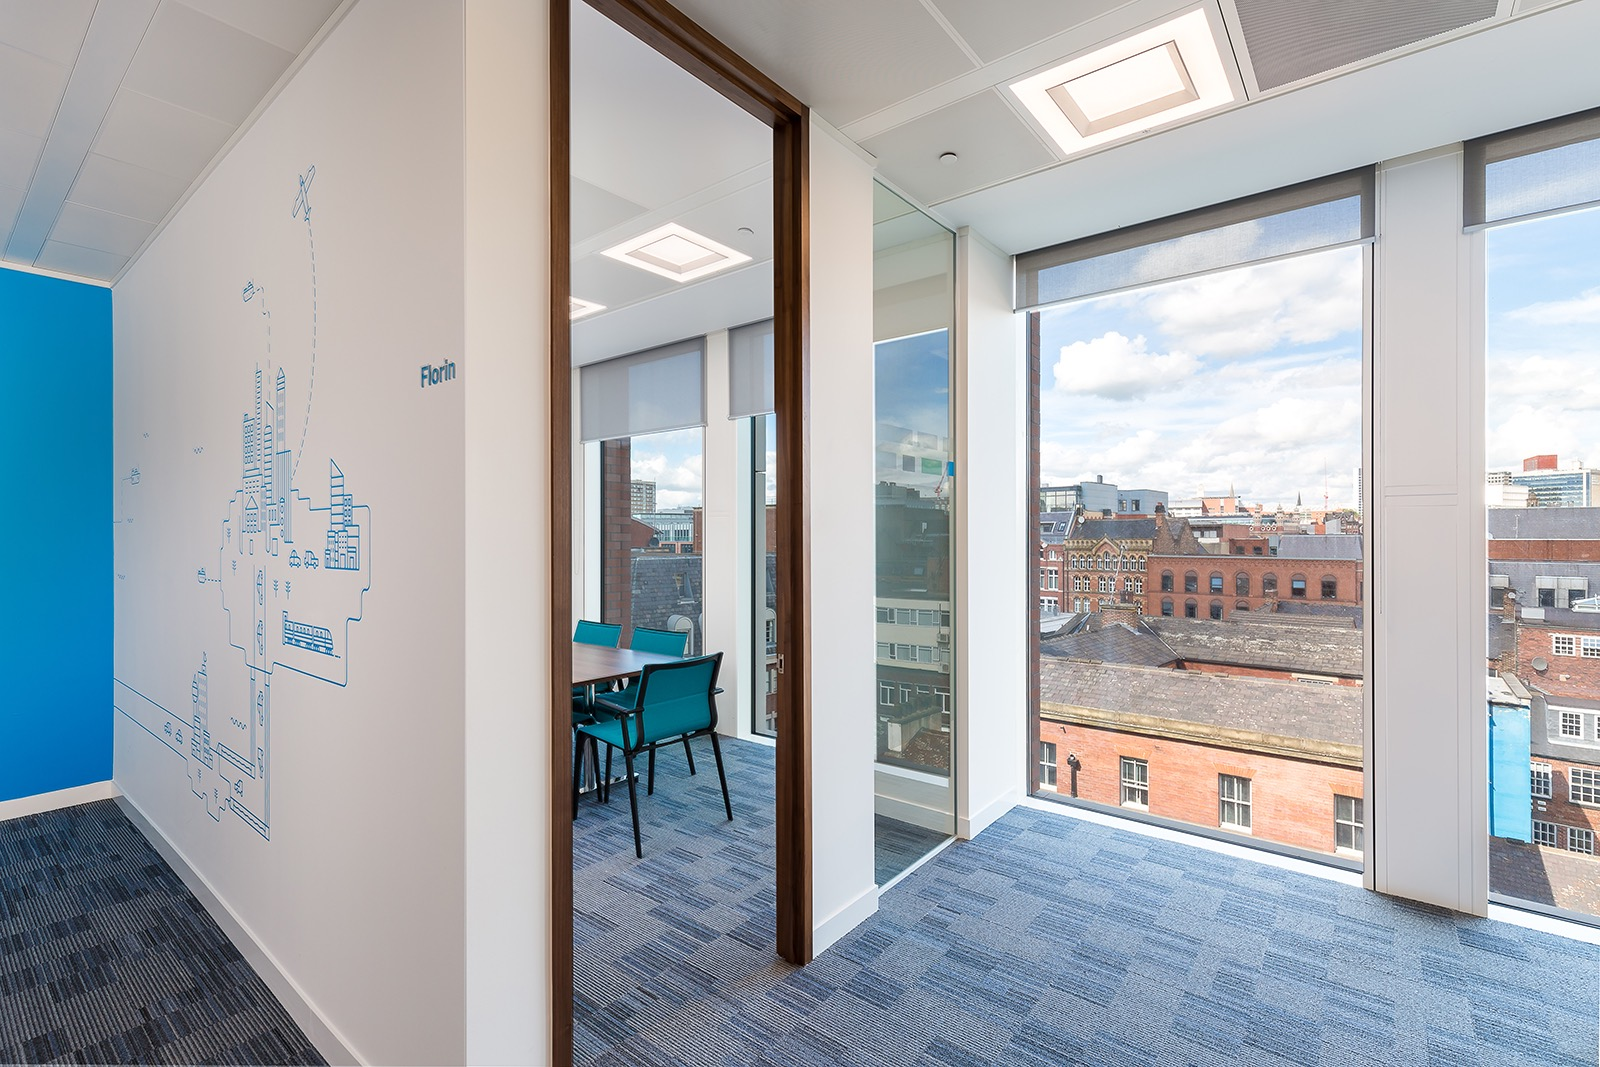 rsm-leeds-office-13